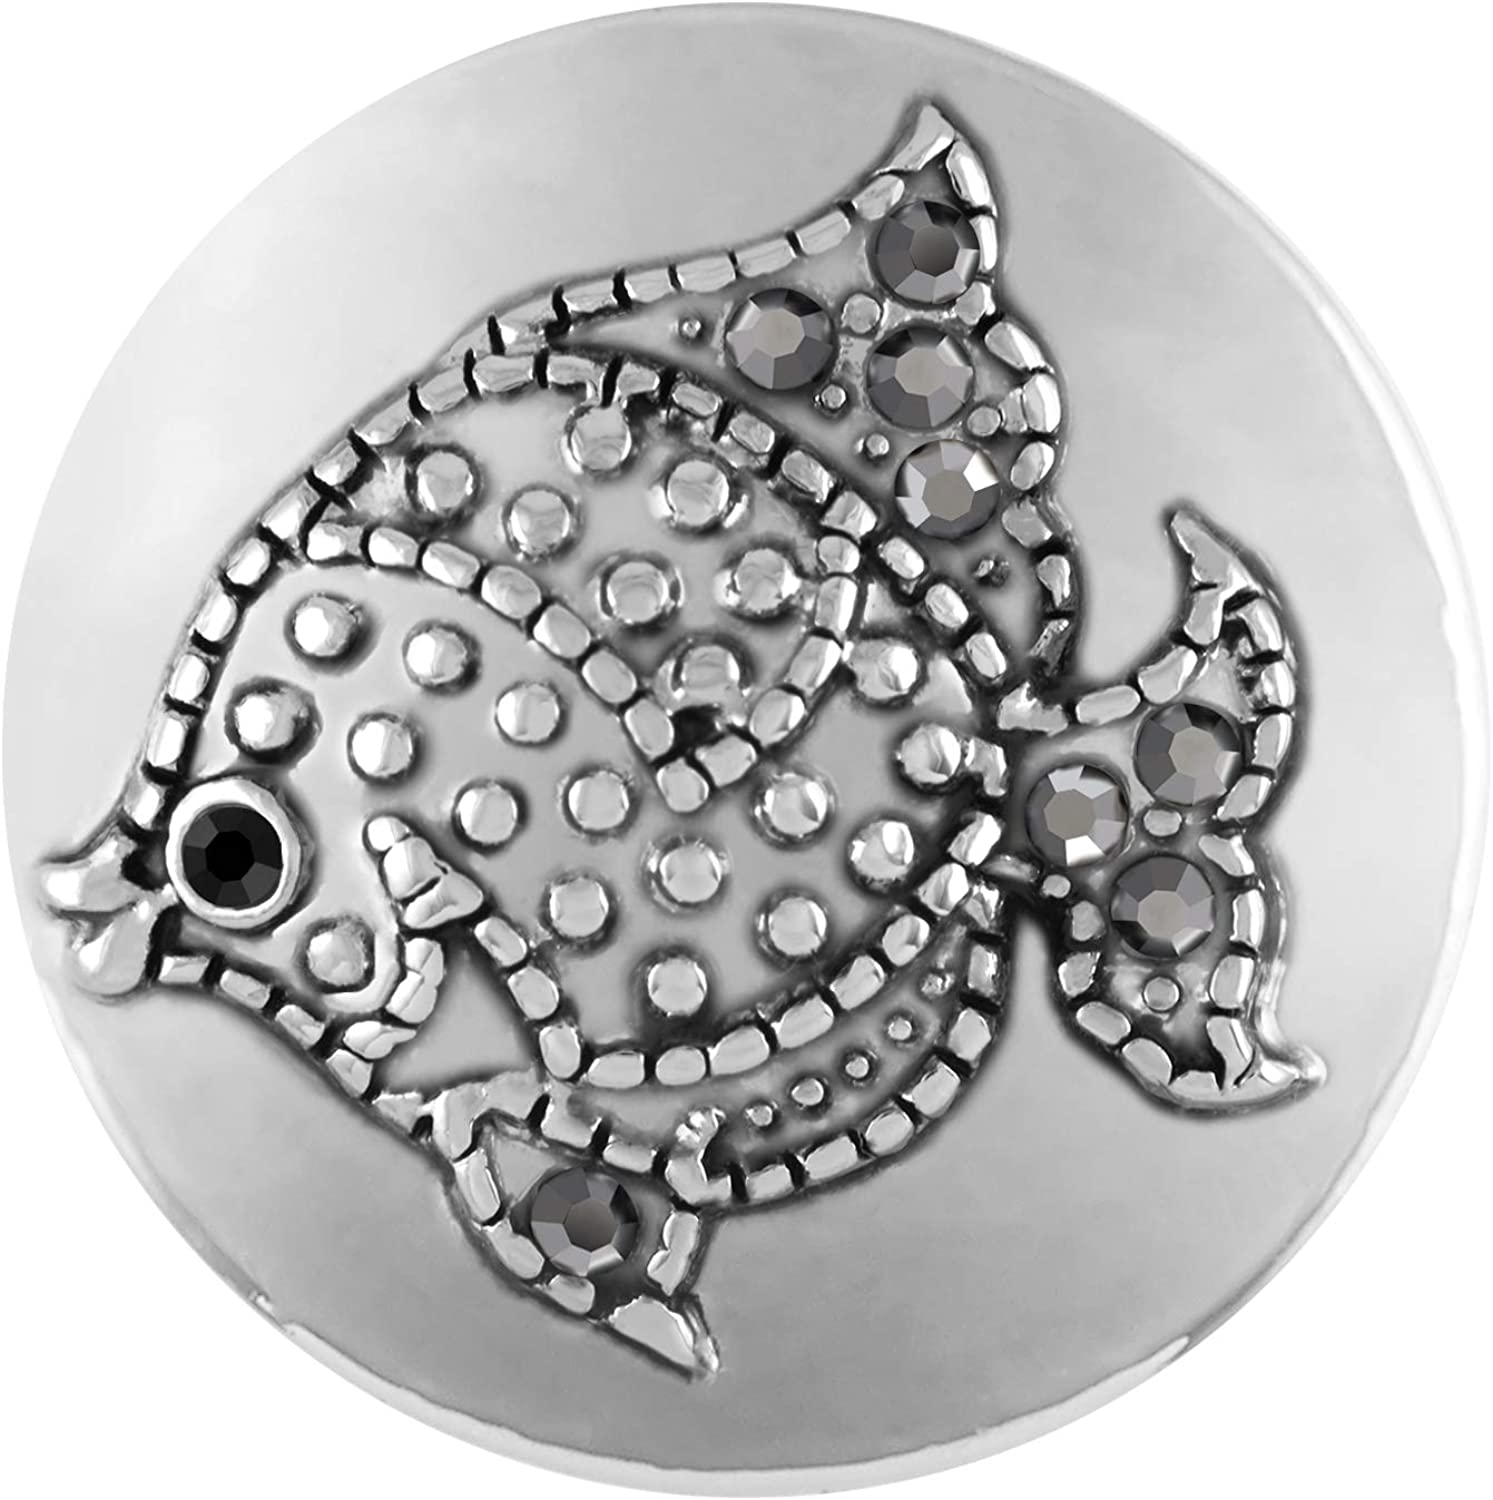 Ginger Snaps Argent Fish Charm Accessory | Interchangeable & Adjustable Snap Jewelry Collection | Button Charms for Necklaces Bracelets | Standard Size | SN21-26 | Valentine's Day Gift